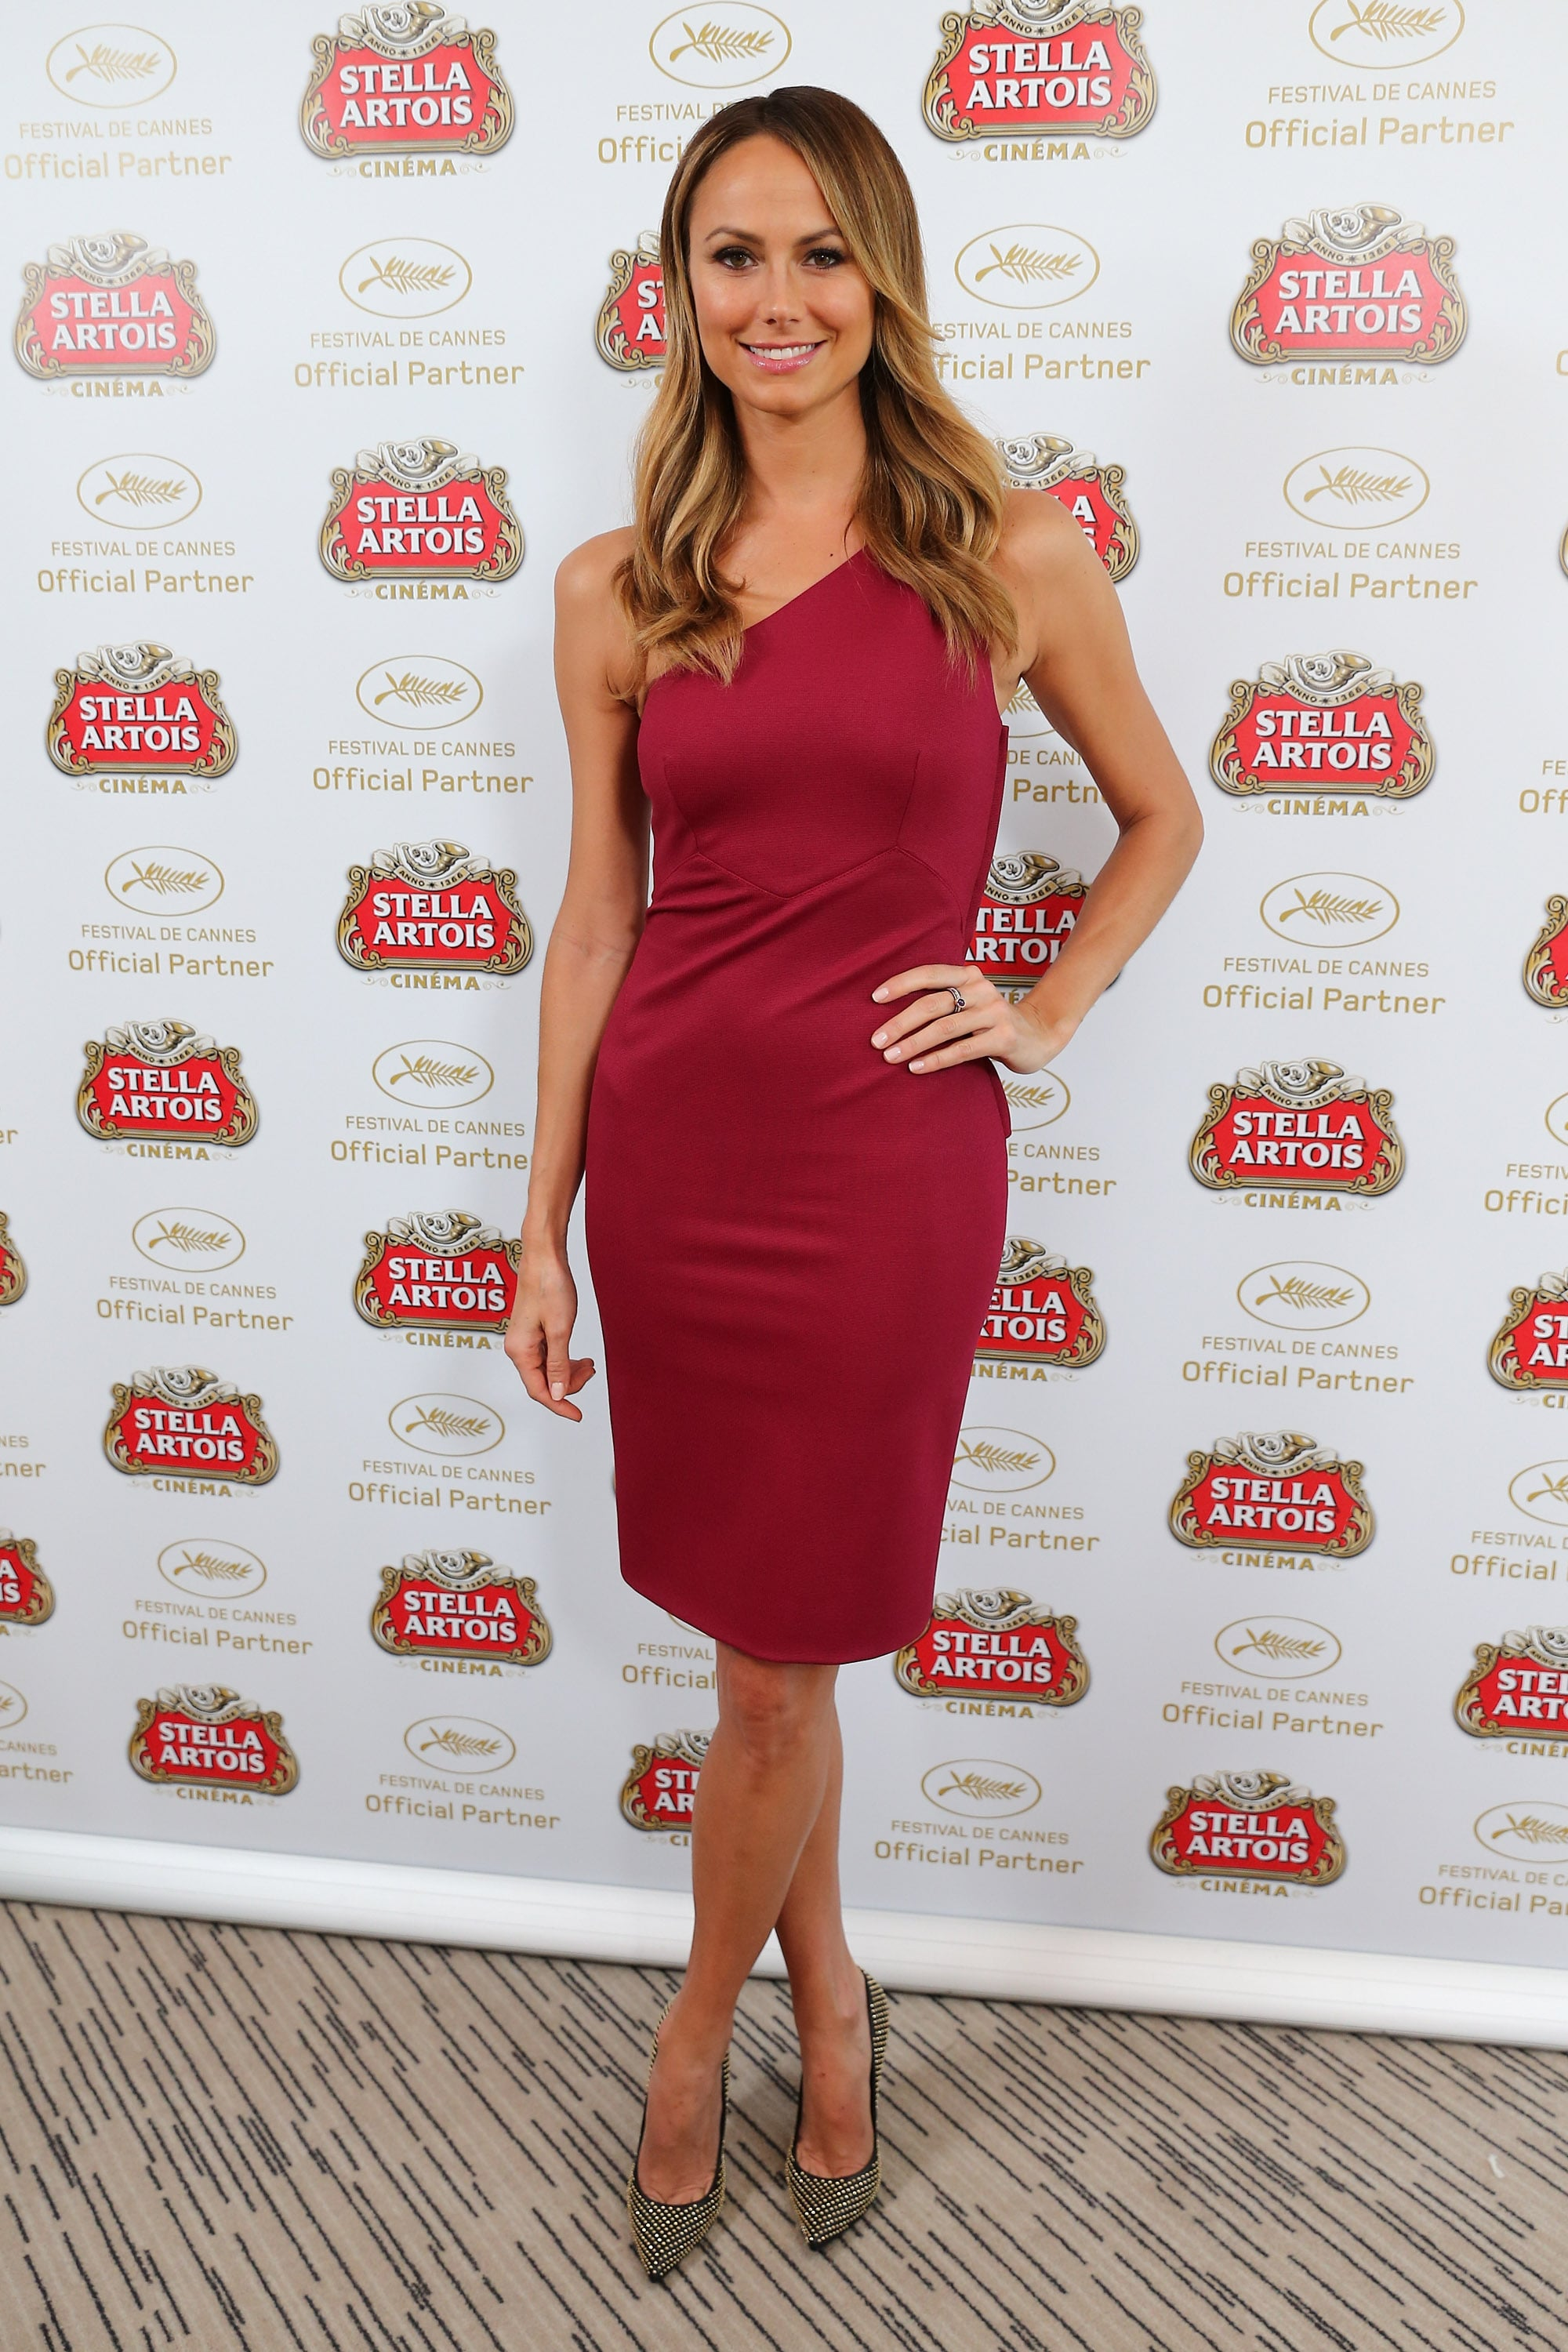 Stacy Keibler visited the Stella Artois Suite during the Cannes Film Festival on Wednesday.